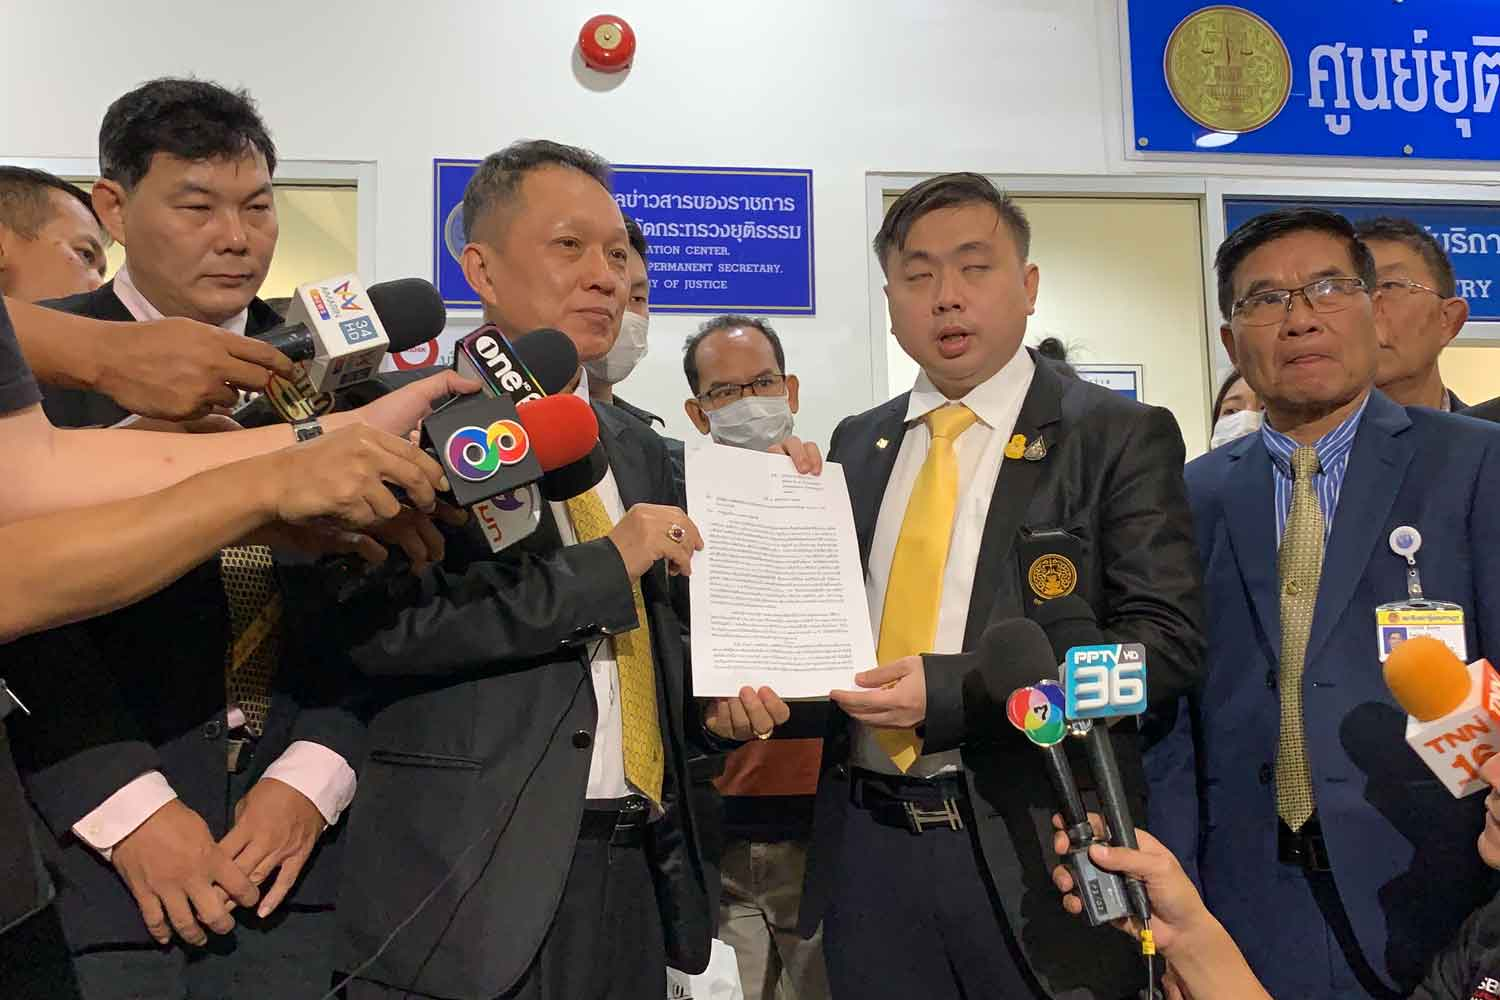 Lawyer Worakorn Pongthanakul, centre left, hands a request for assistance from vendors who faced